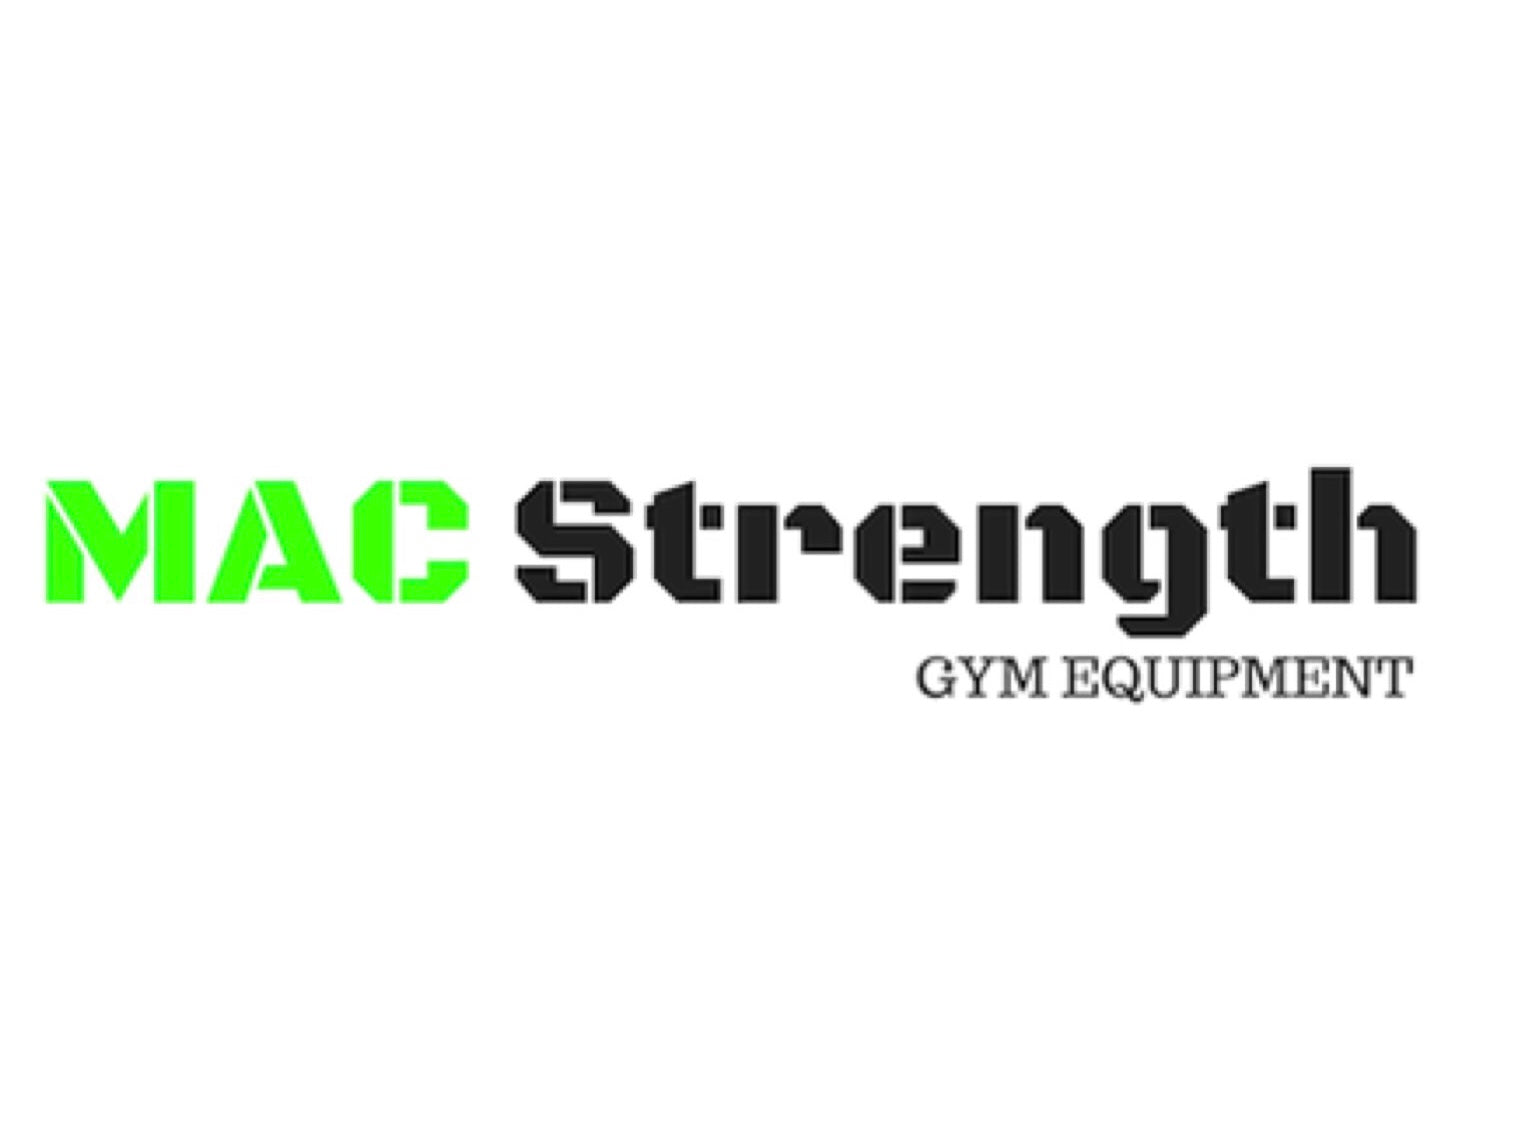 Mac Strength gym equipment